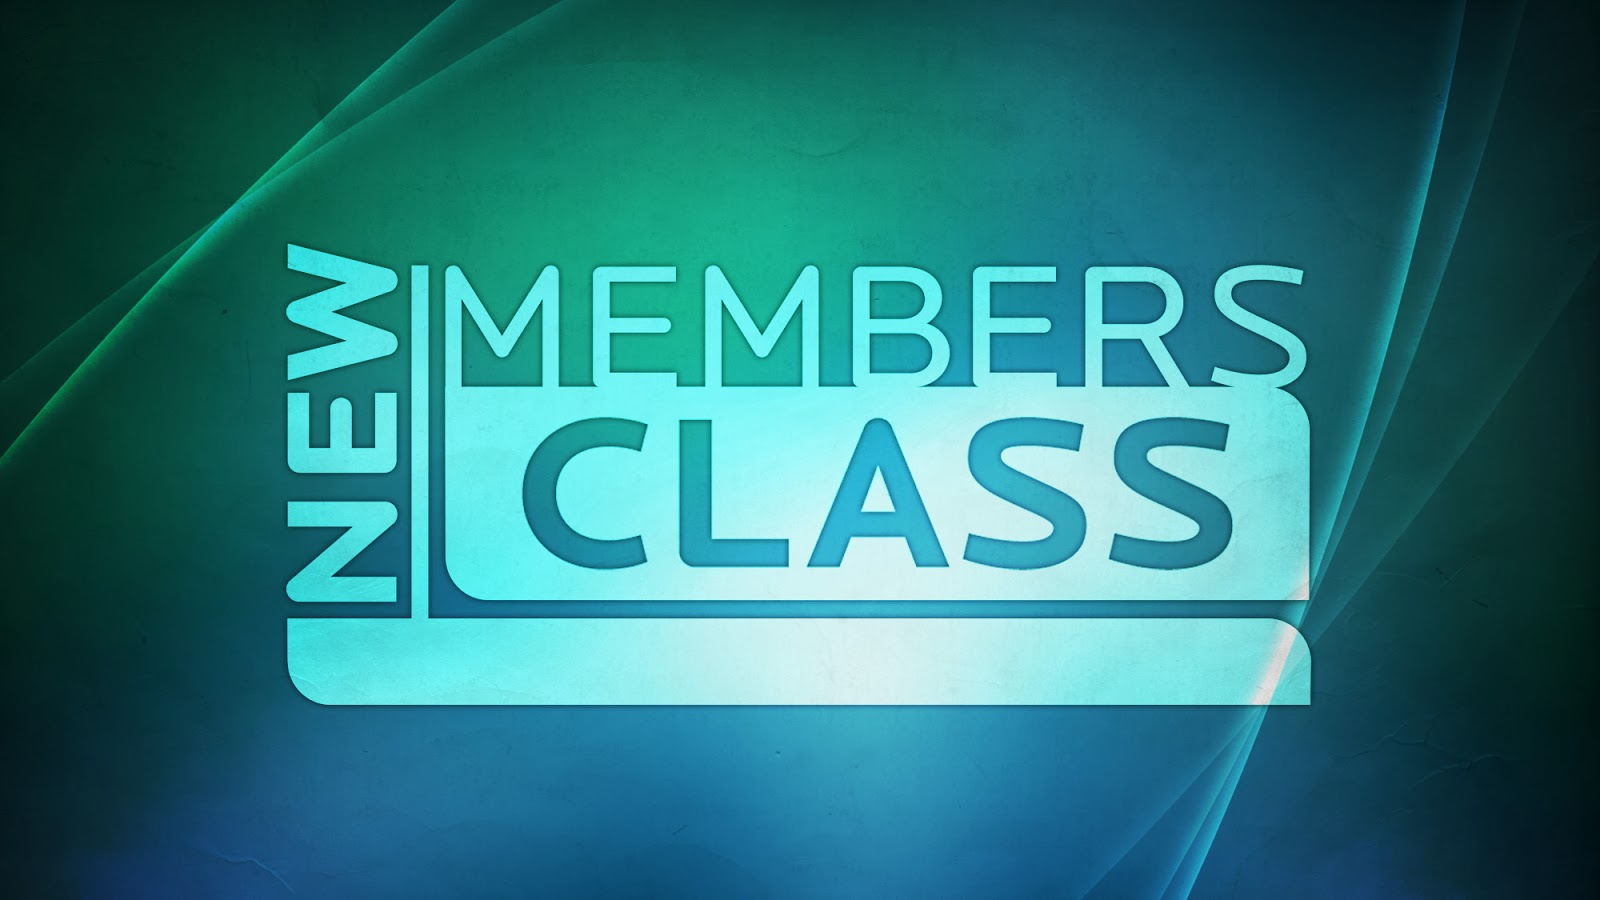 Church of the Covenant is a Presbyterian Church located on ... |Membership Class